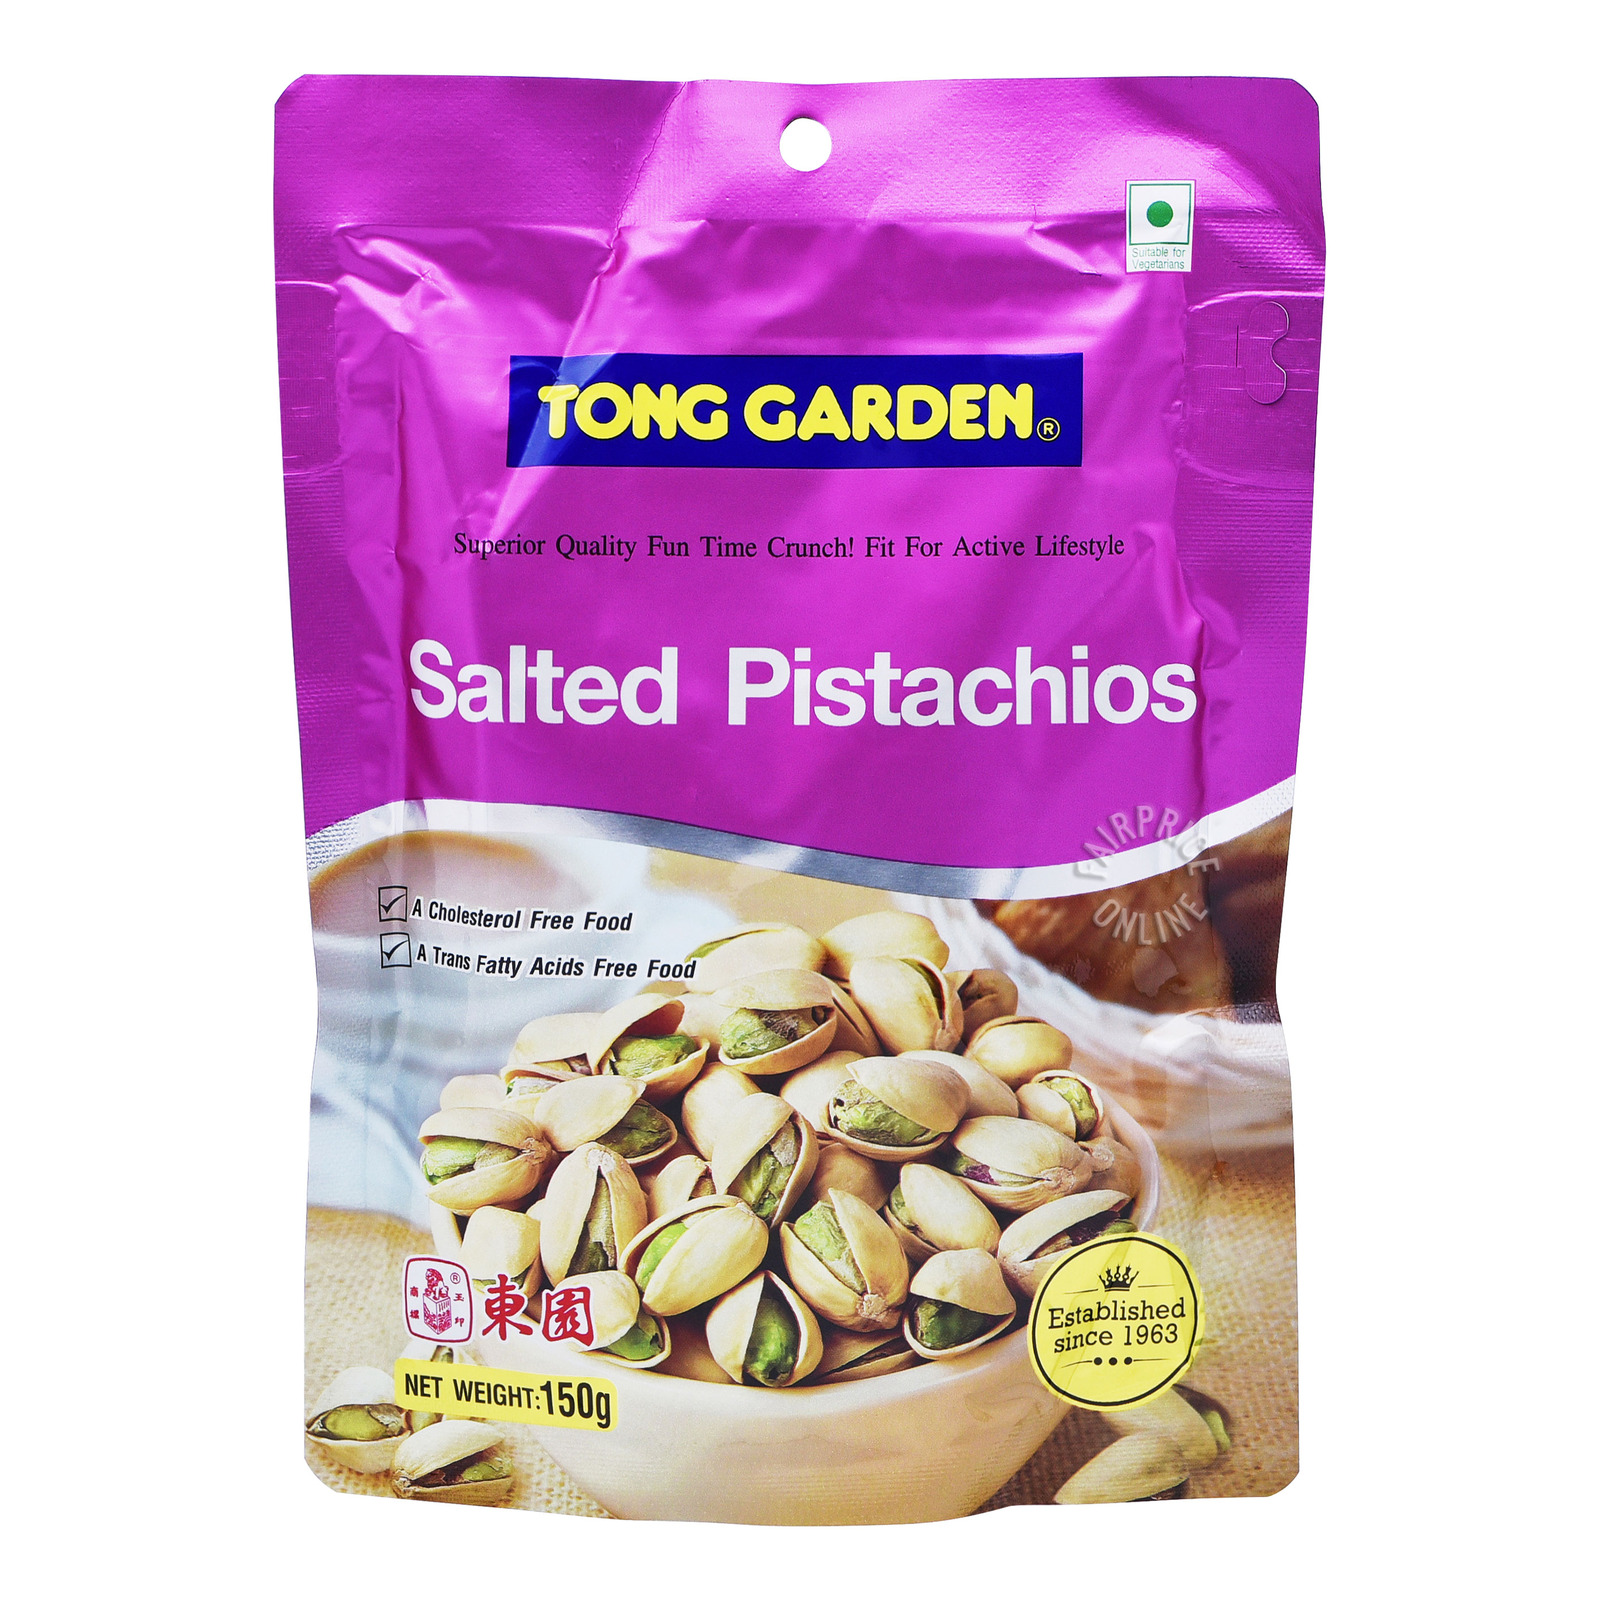 Tong Garden Salted Nuts - Pistachios